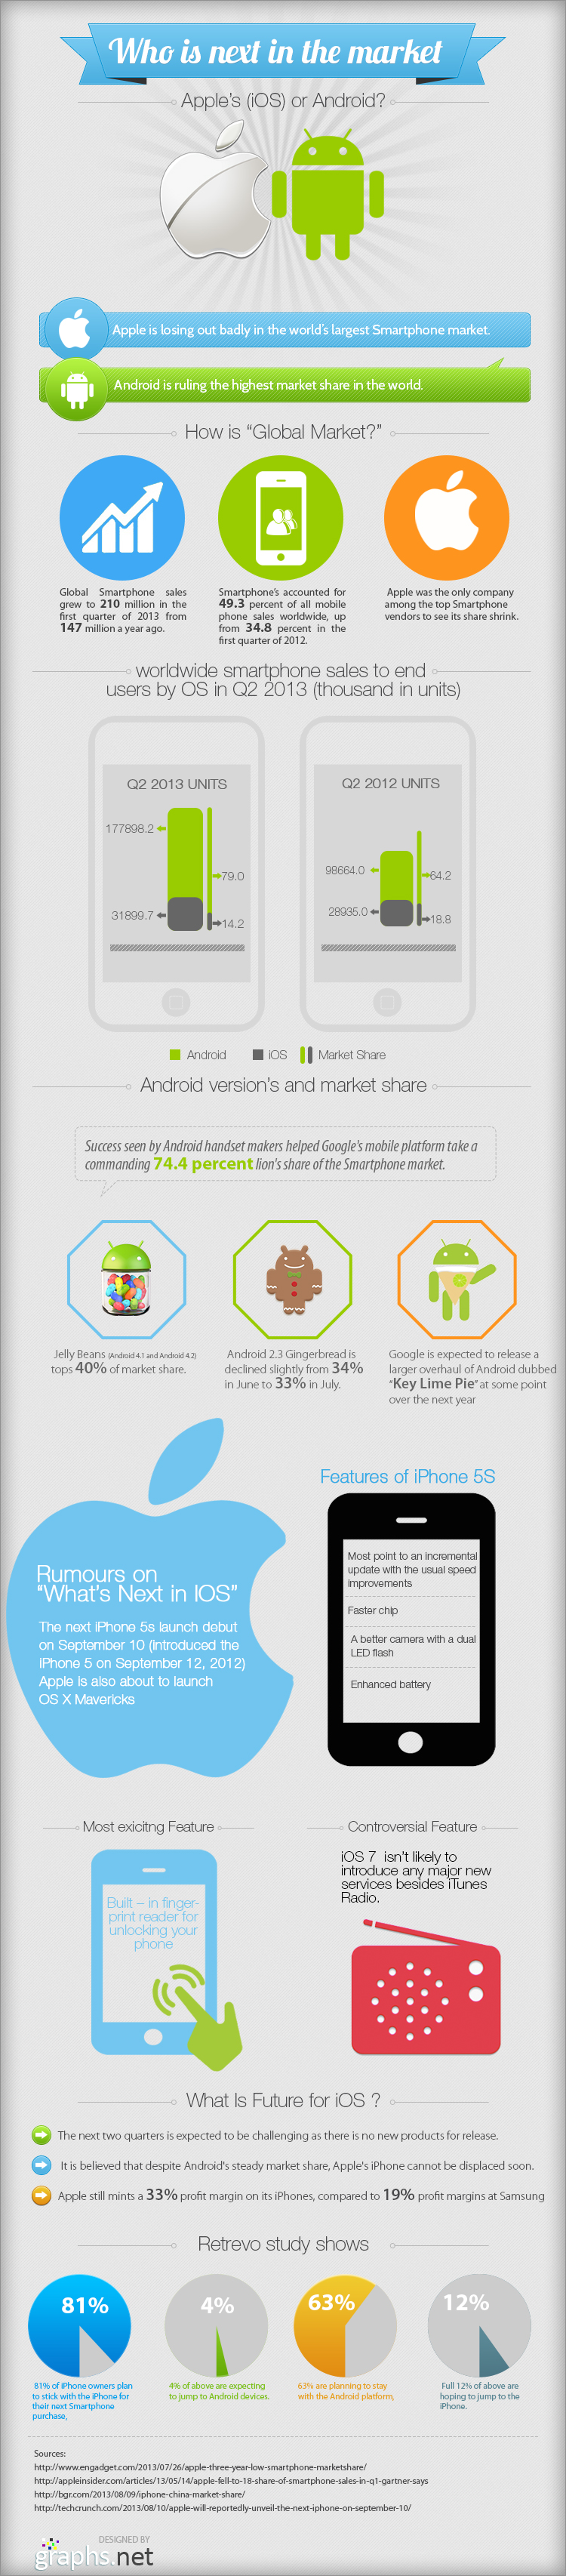 Who-is-next-in-the-market-Apple-or-Android